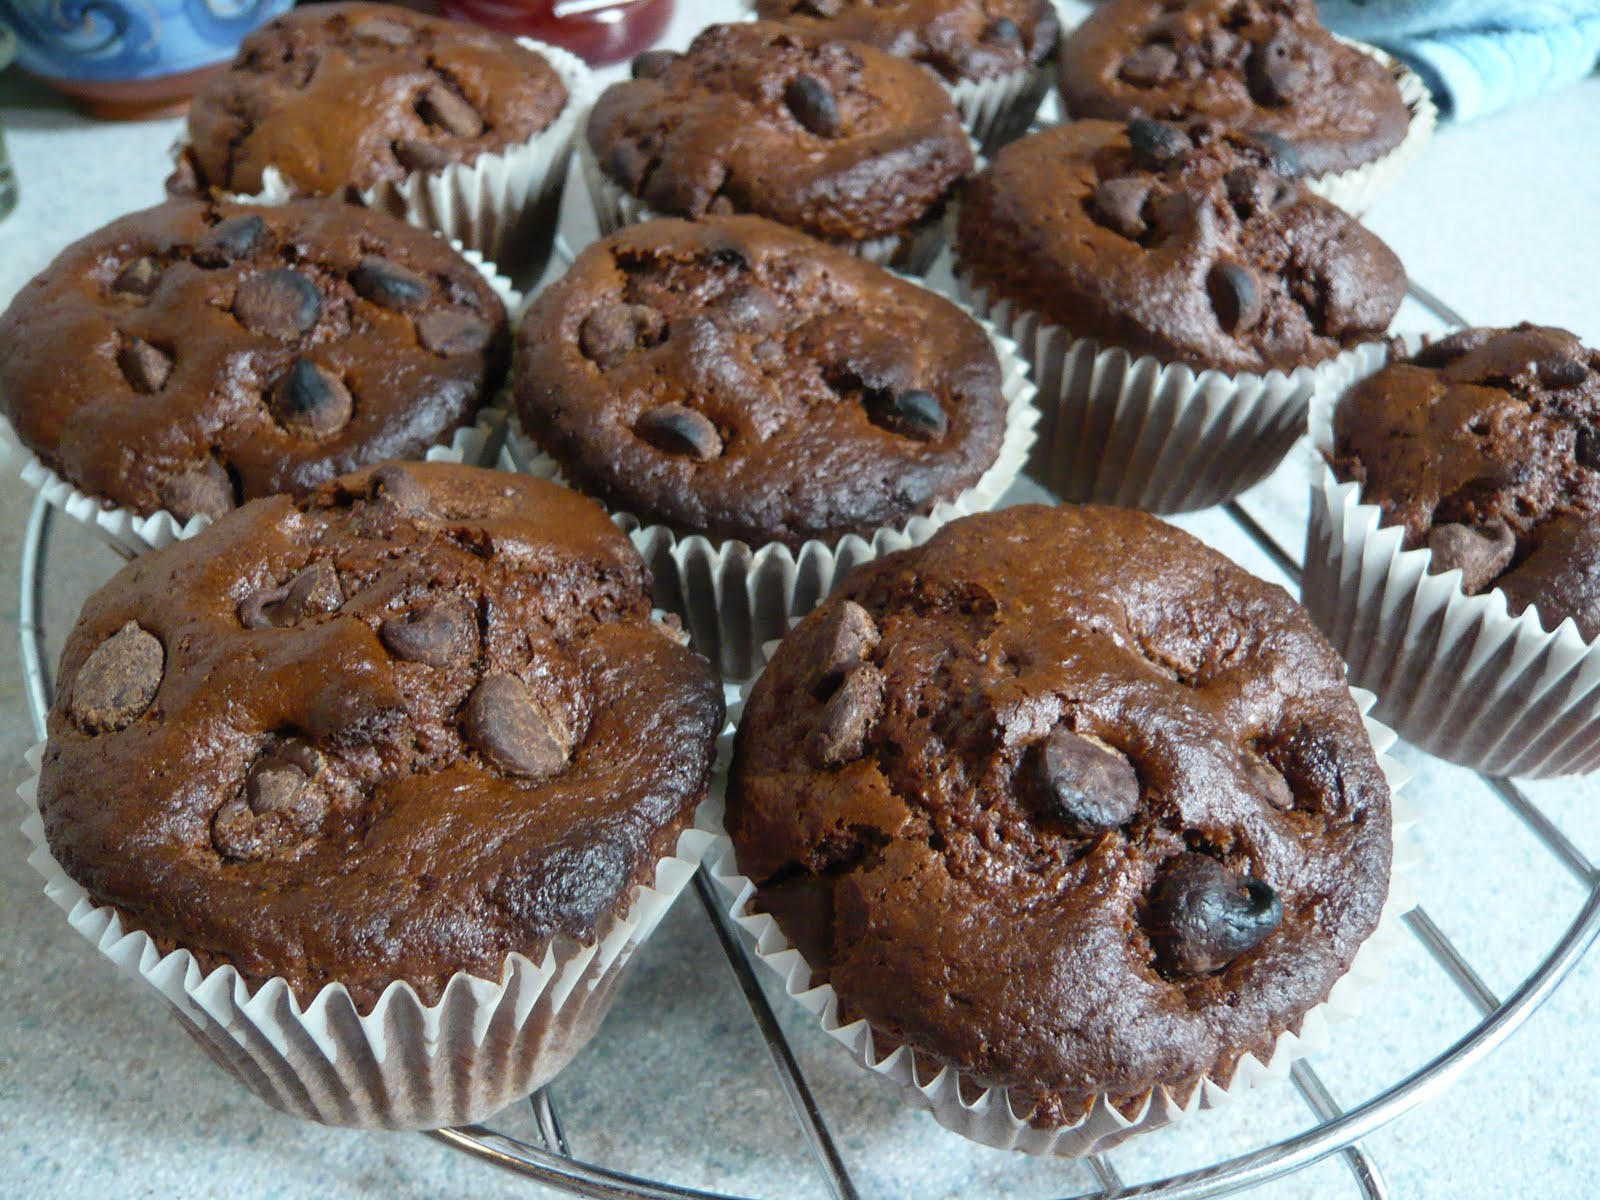 Double Chocolate Chip Muffins  Dispatches from the Deise Double Chocolate Chip Muffins